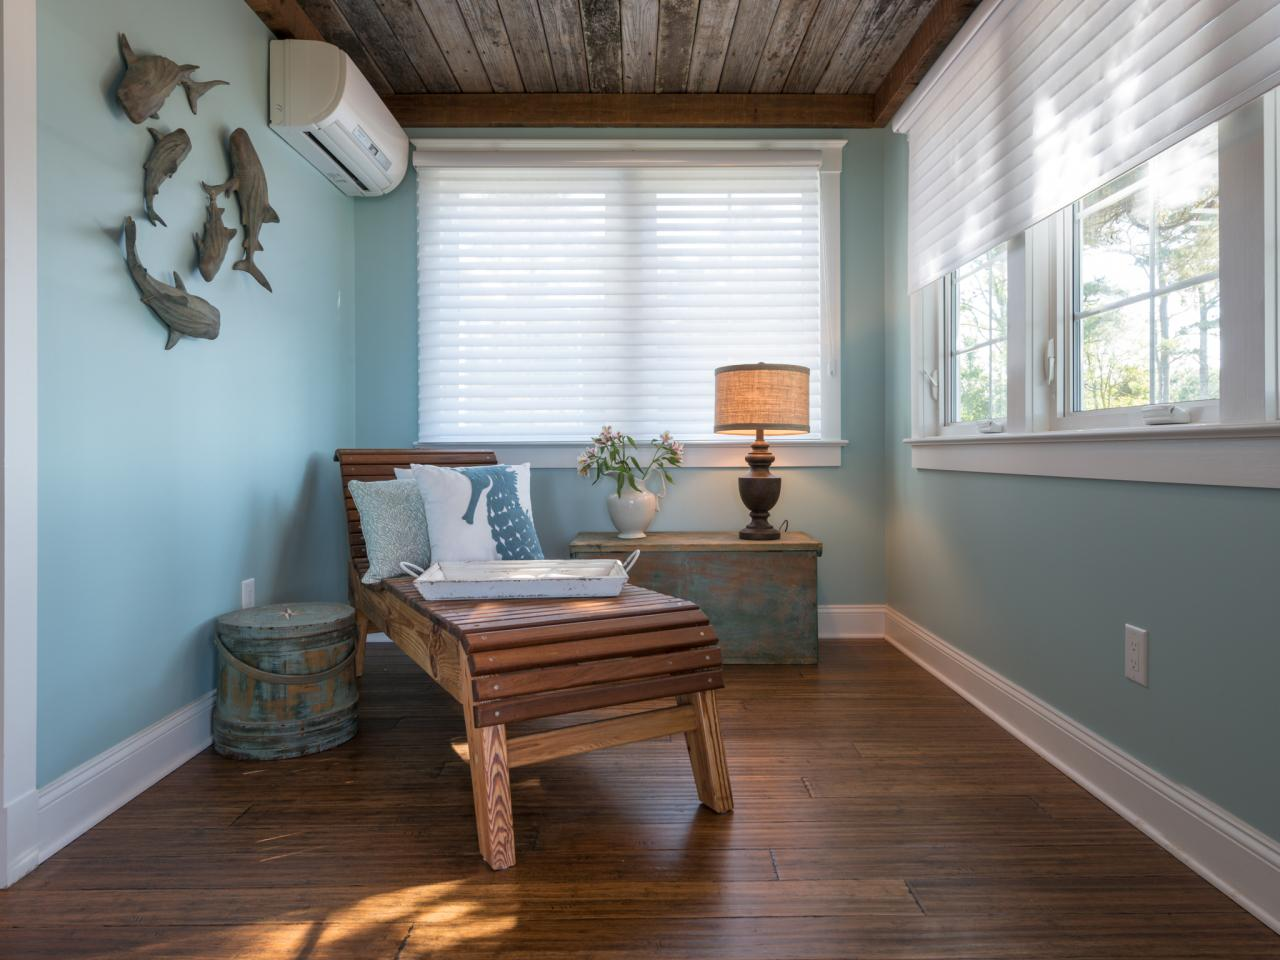 http://www.diynetwork.com/how-to/make-and-decorate/upcycling/how-to-install-a-reclaimed-wood-ceiling-treatment